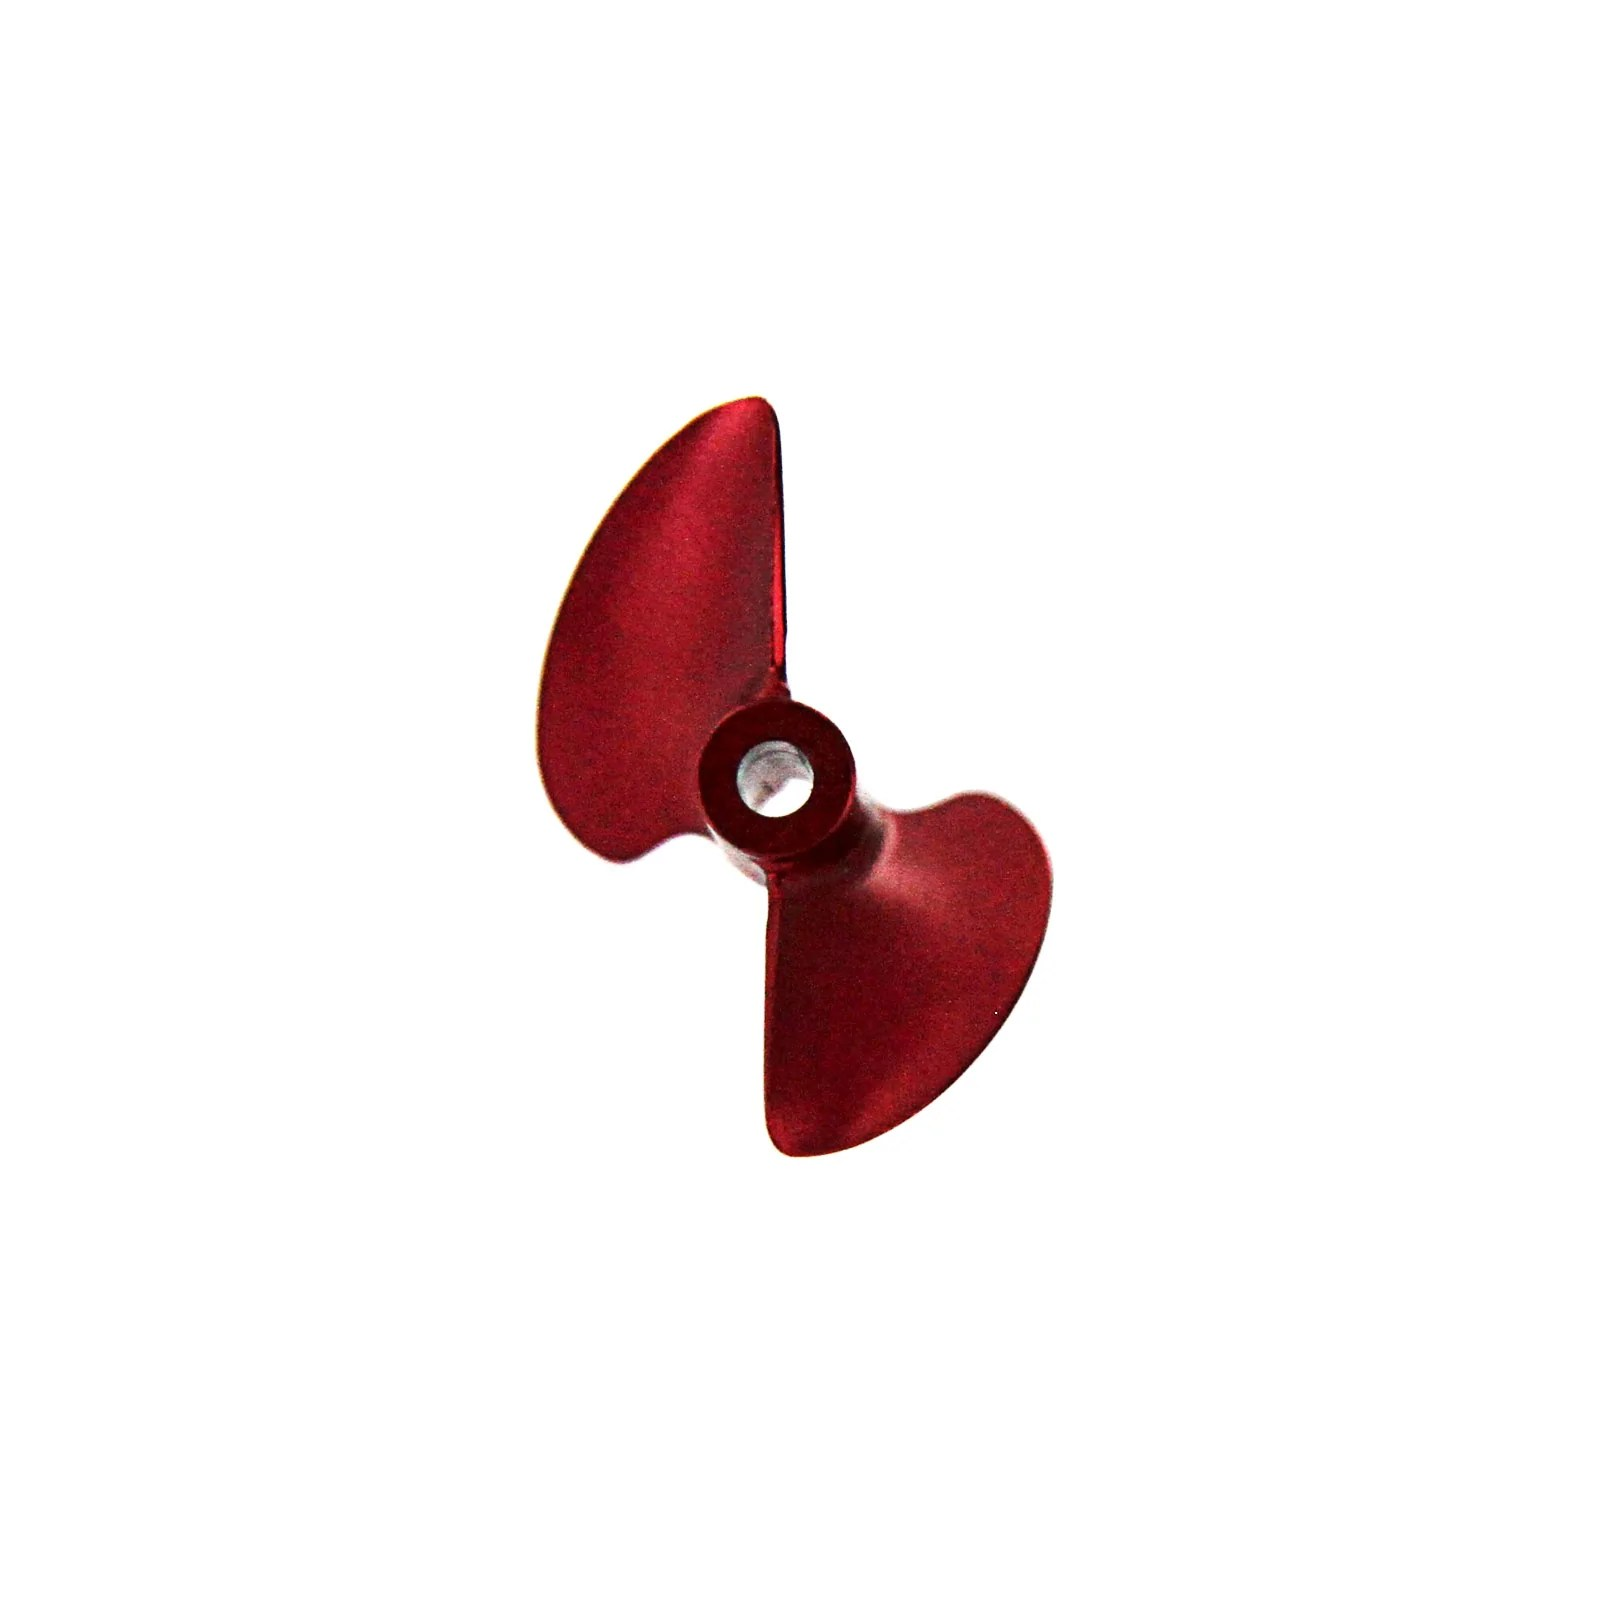 atomik rc cnc alloy propeller 32mm p1 4 red for barbwire 2 3 [ 1600 x 1600 Pixel ]